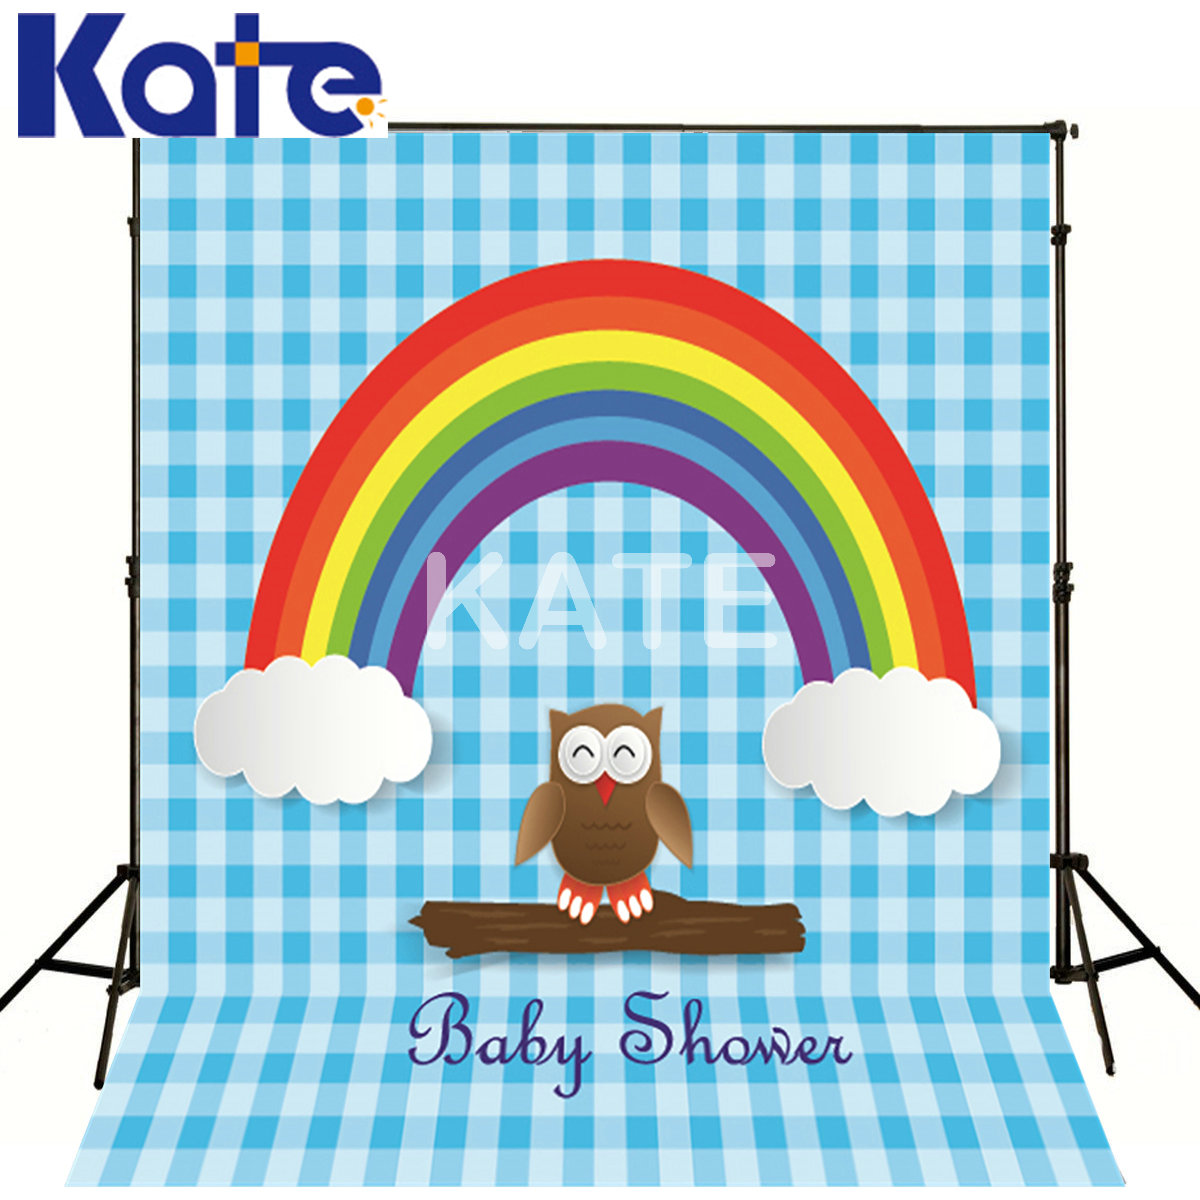 Kate Photography Backdrops 10X10 Owl Rainbow Clouds For New Baby Kate Background Backdrop<br>